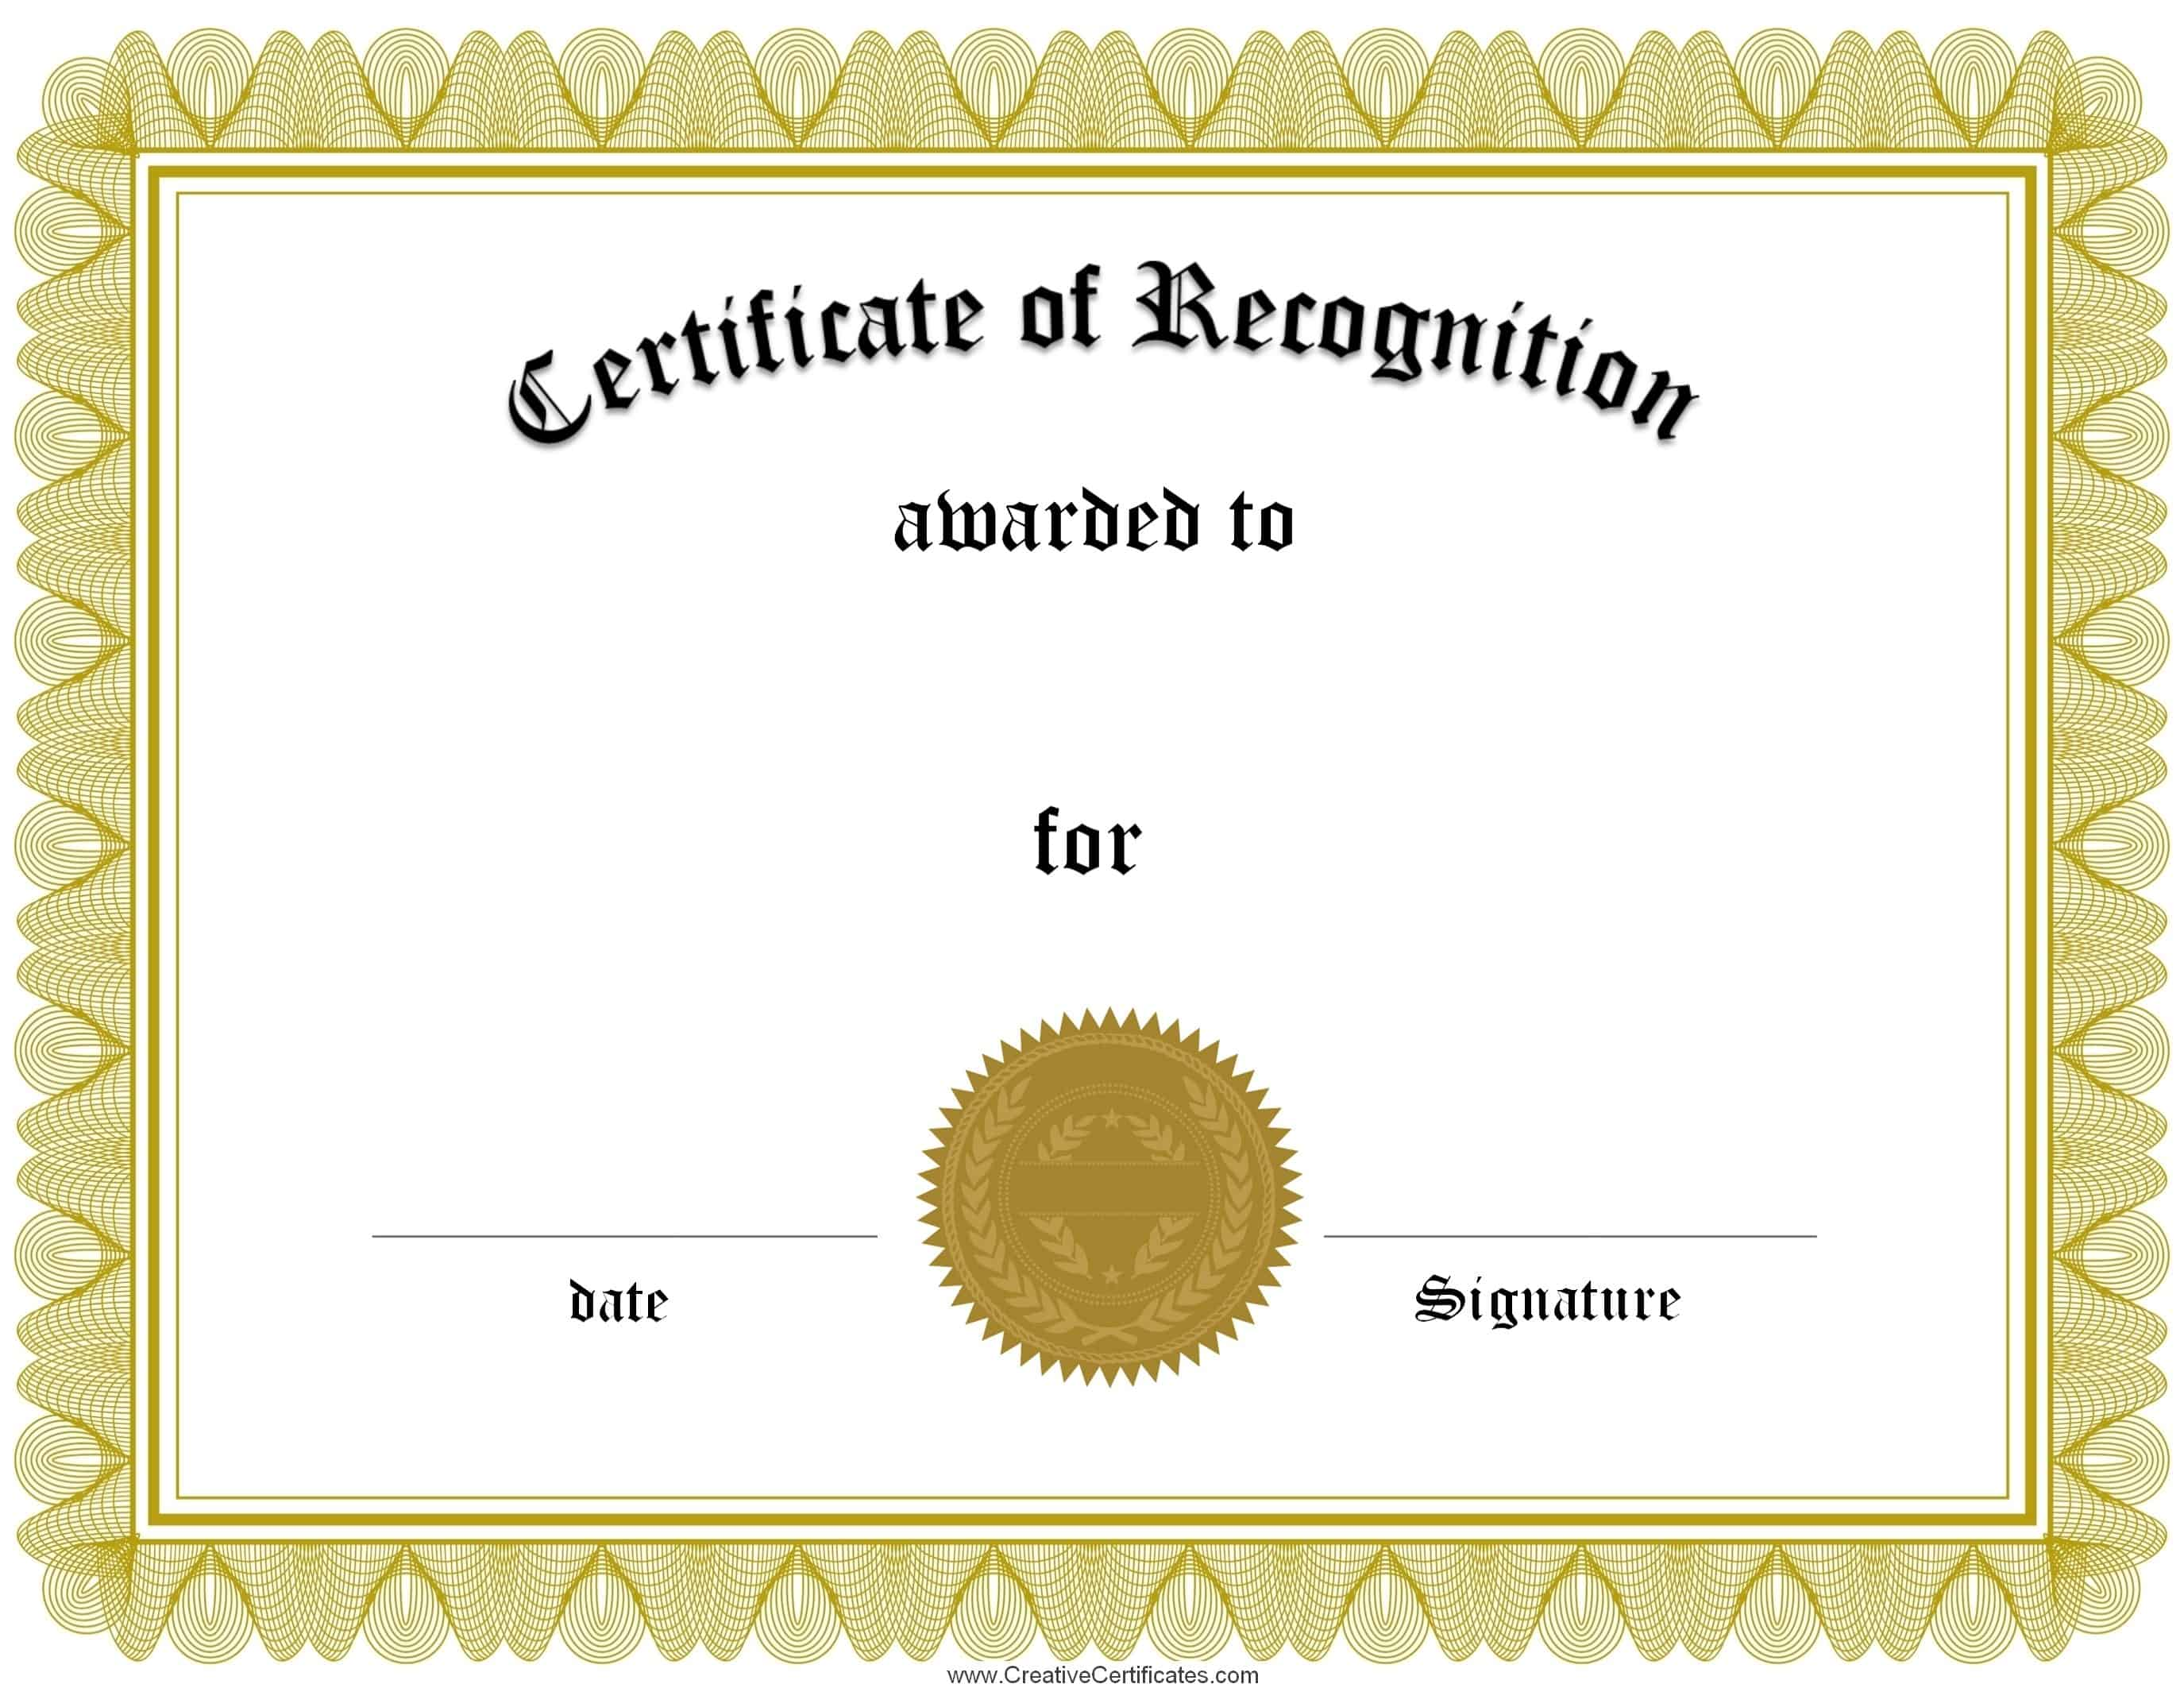 Free certificate of recognition template – Sample Printable Certificate Template